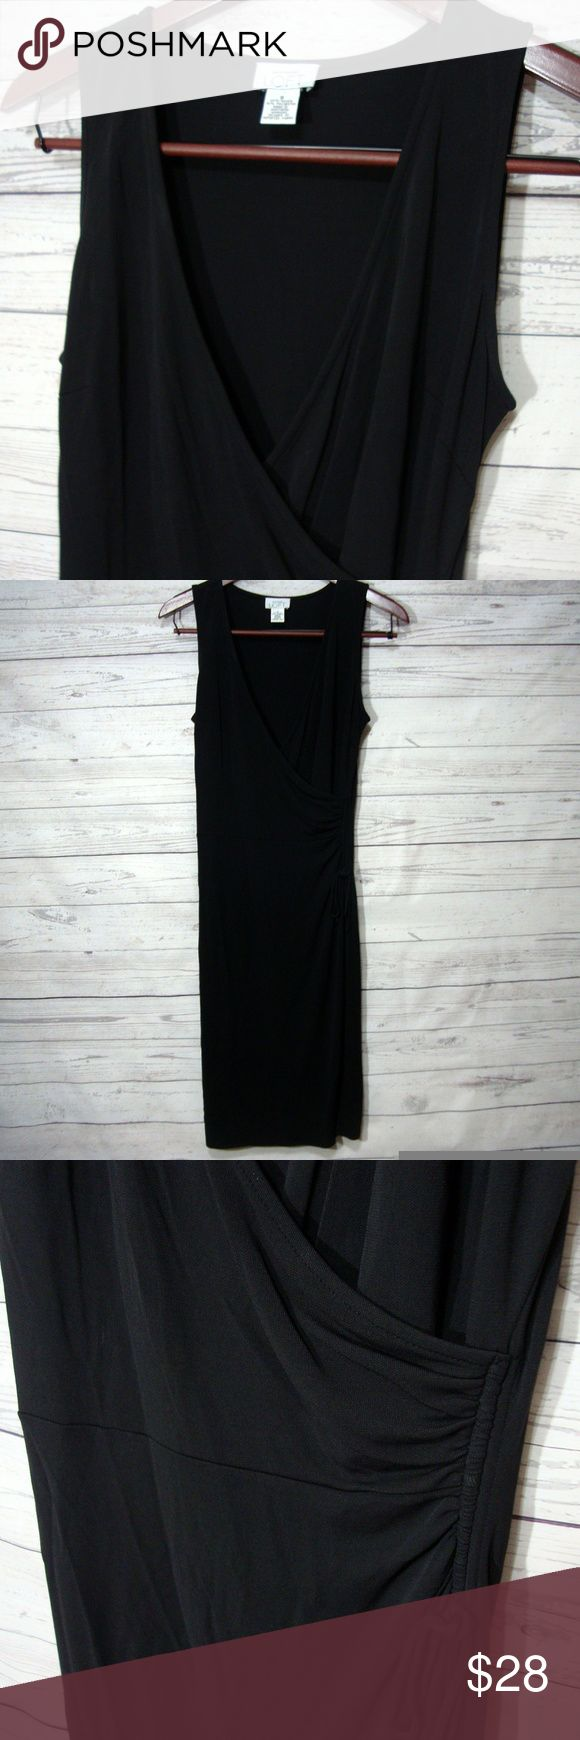 Ann Taylor Loft Faux Wrap Dress 8 Sleeveless Work From Ann Taylor Loft  Size 8  Laying flat it measures: underarm to underarm - 18 inches across from back of neck to bottom - 42 inches  Color: black  Gently used  Slinky rayon - travel friendly  From a smoke free and pet friendly home LOFT Dresses Midi